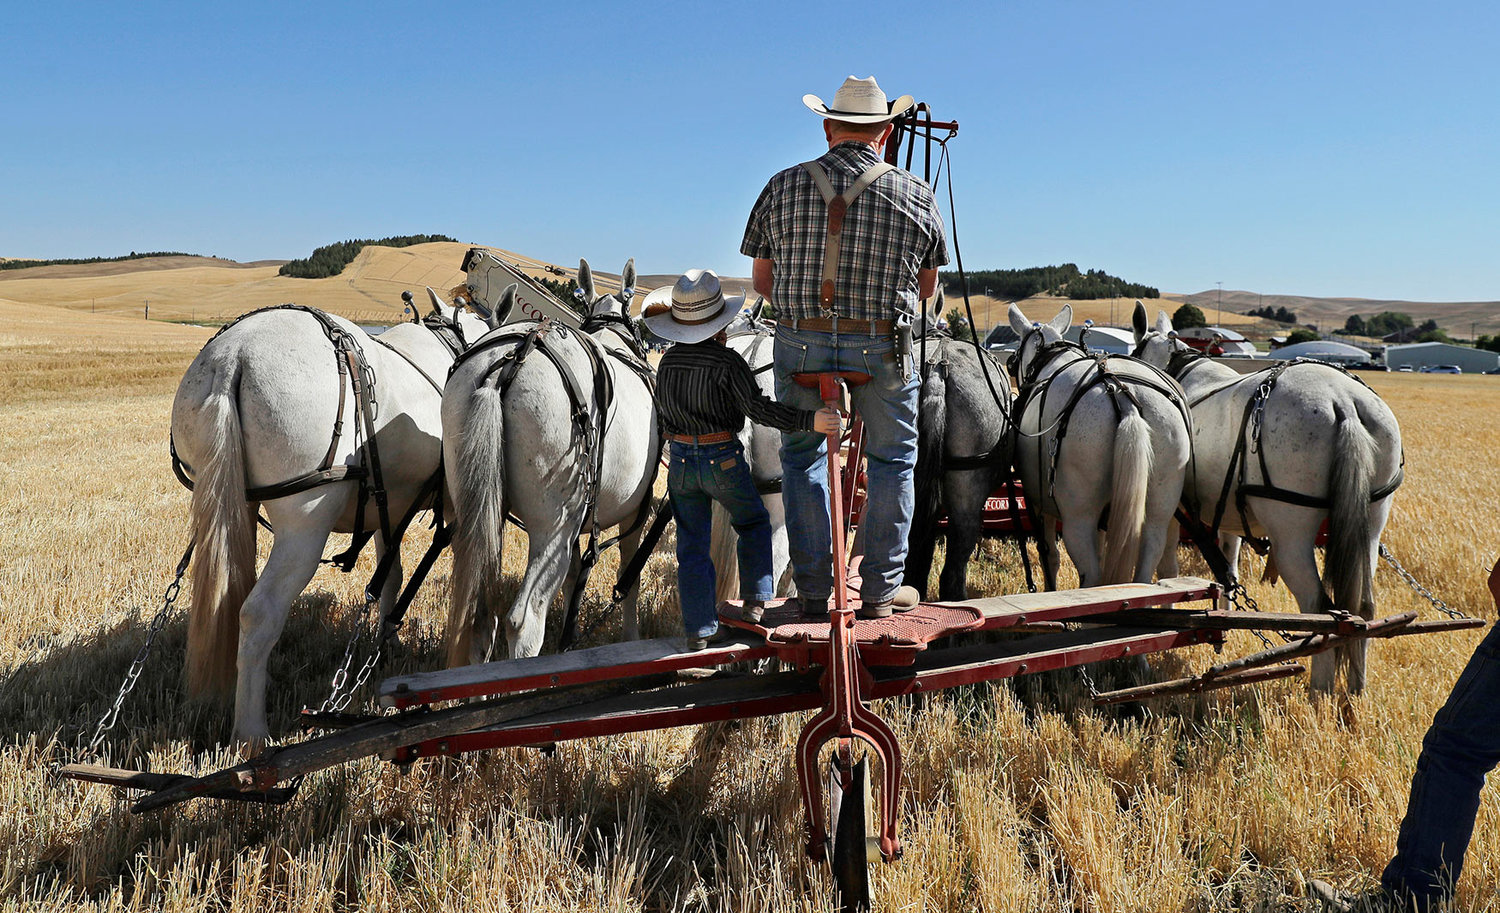 Old-fashioned harvest: Preserving past using horses, mules